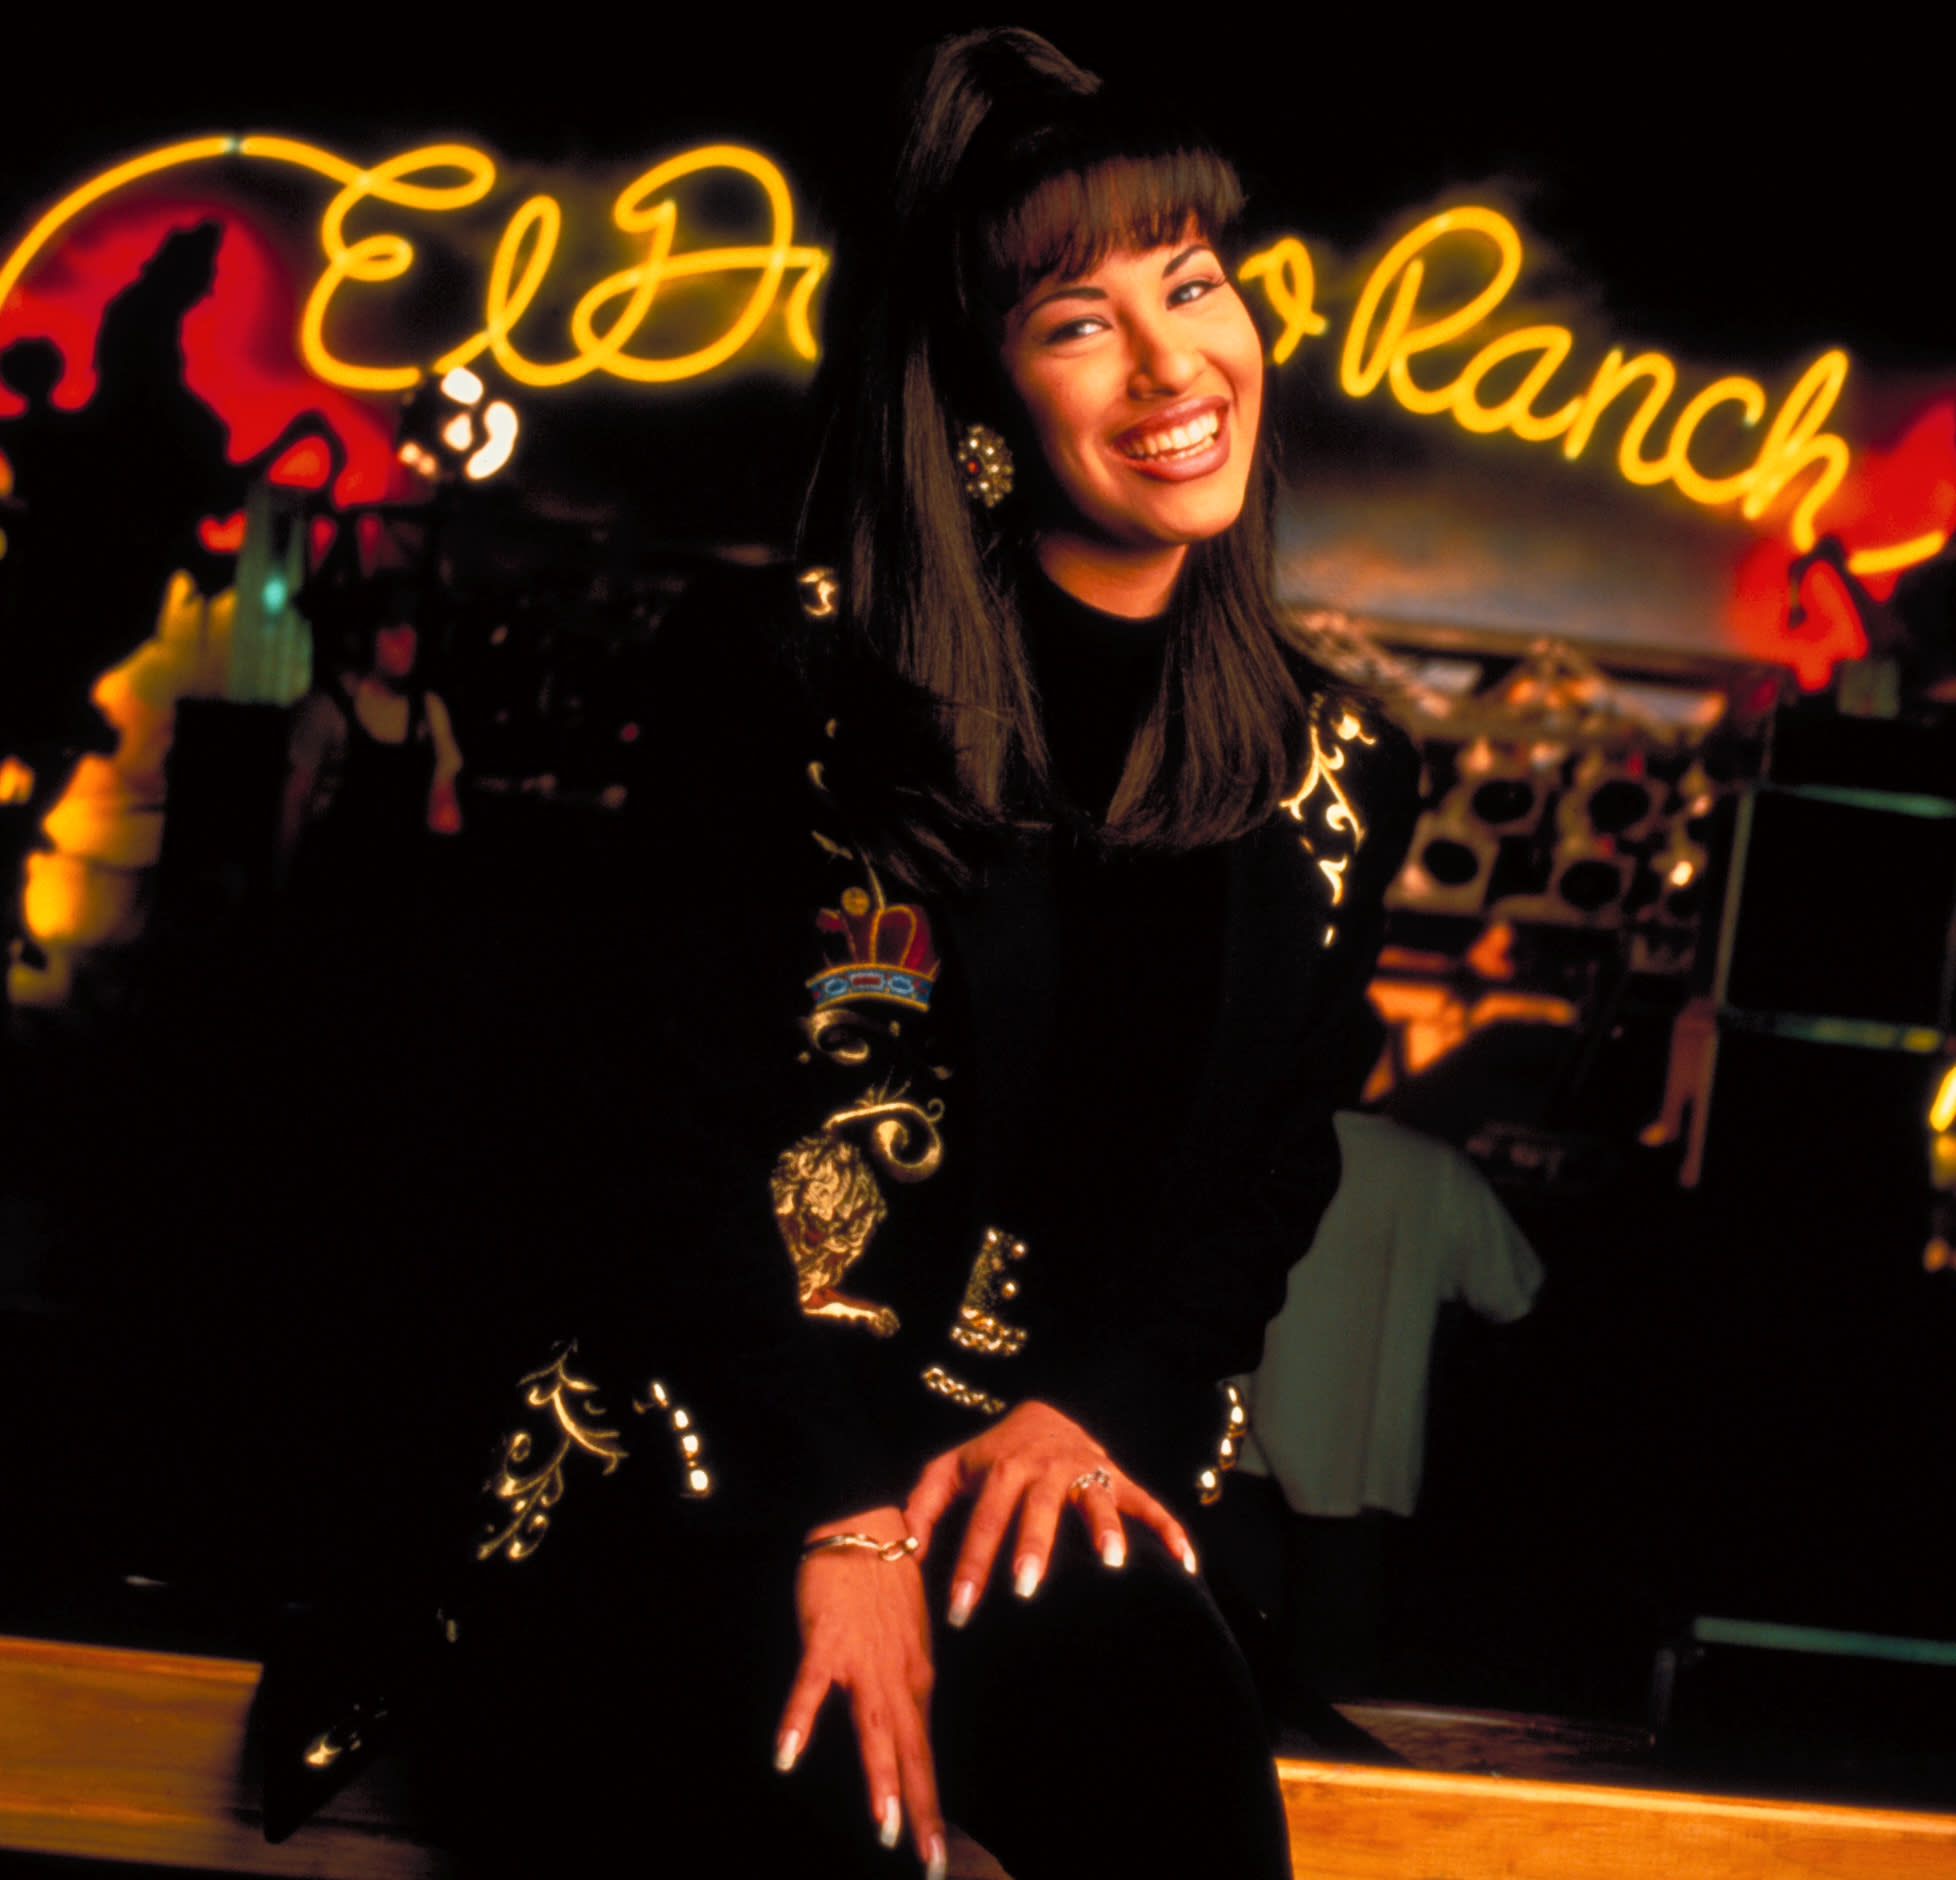 Selena Quintanilla-Perez was tragically murdered in 1995. (Getty Images)